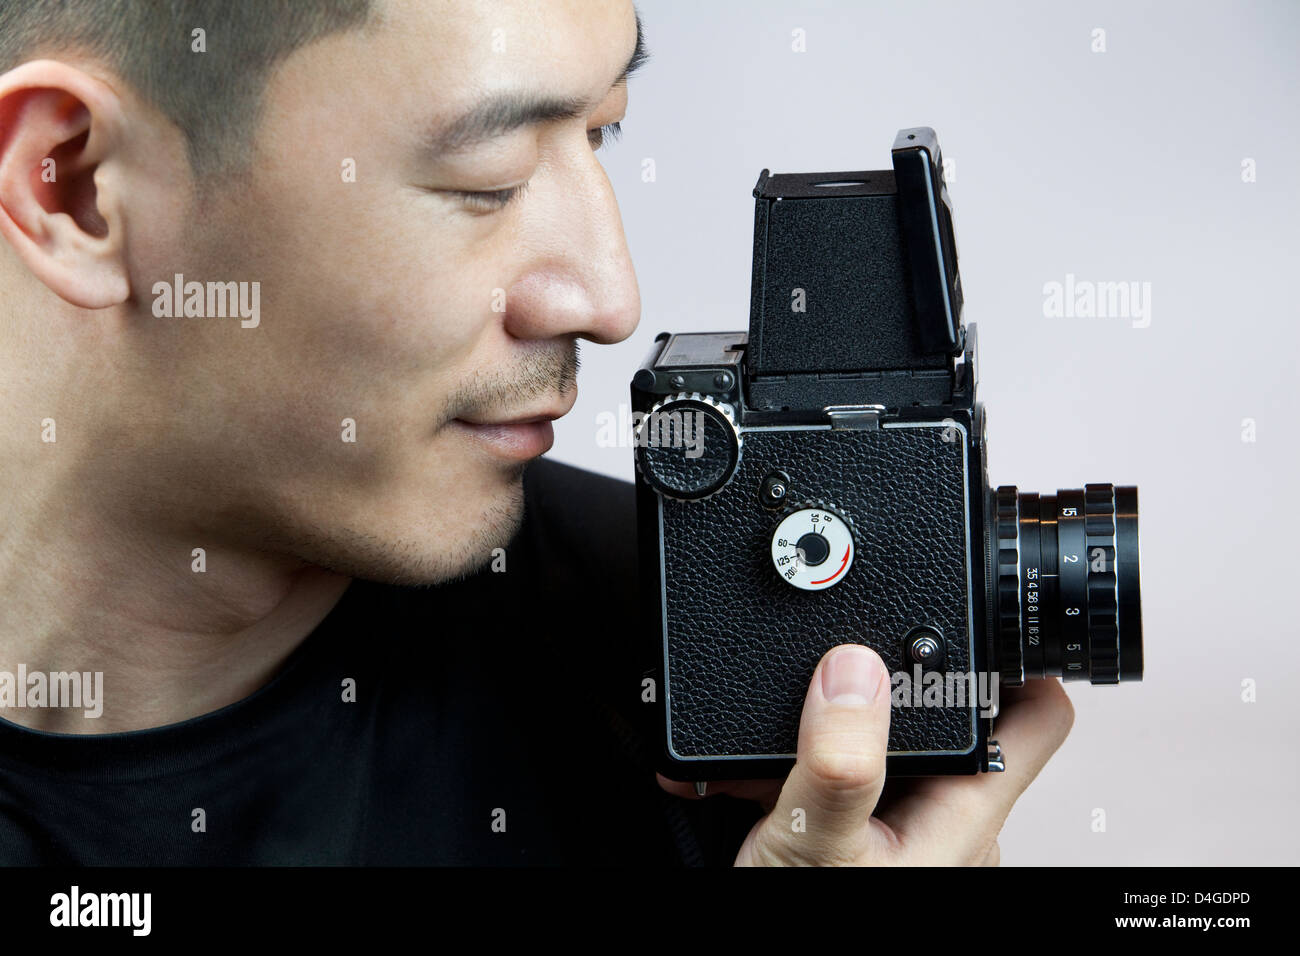 Young man taking photos with old-fashioned camera - Stock Image